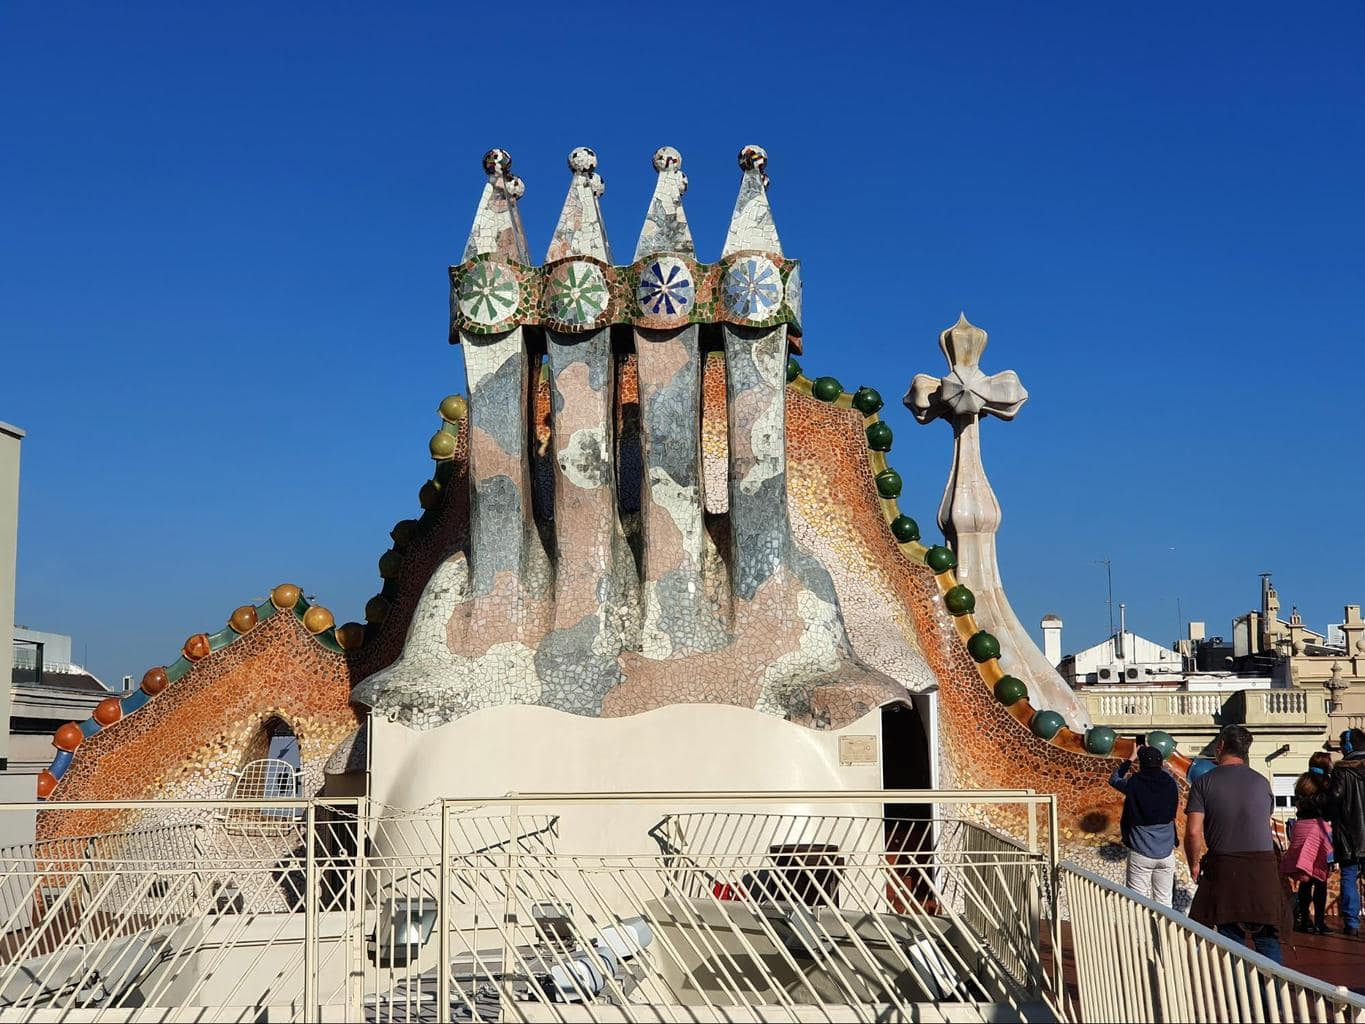 Gaudi's famous chimneys on the roof of Casa Batlló